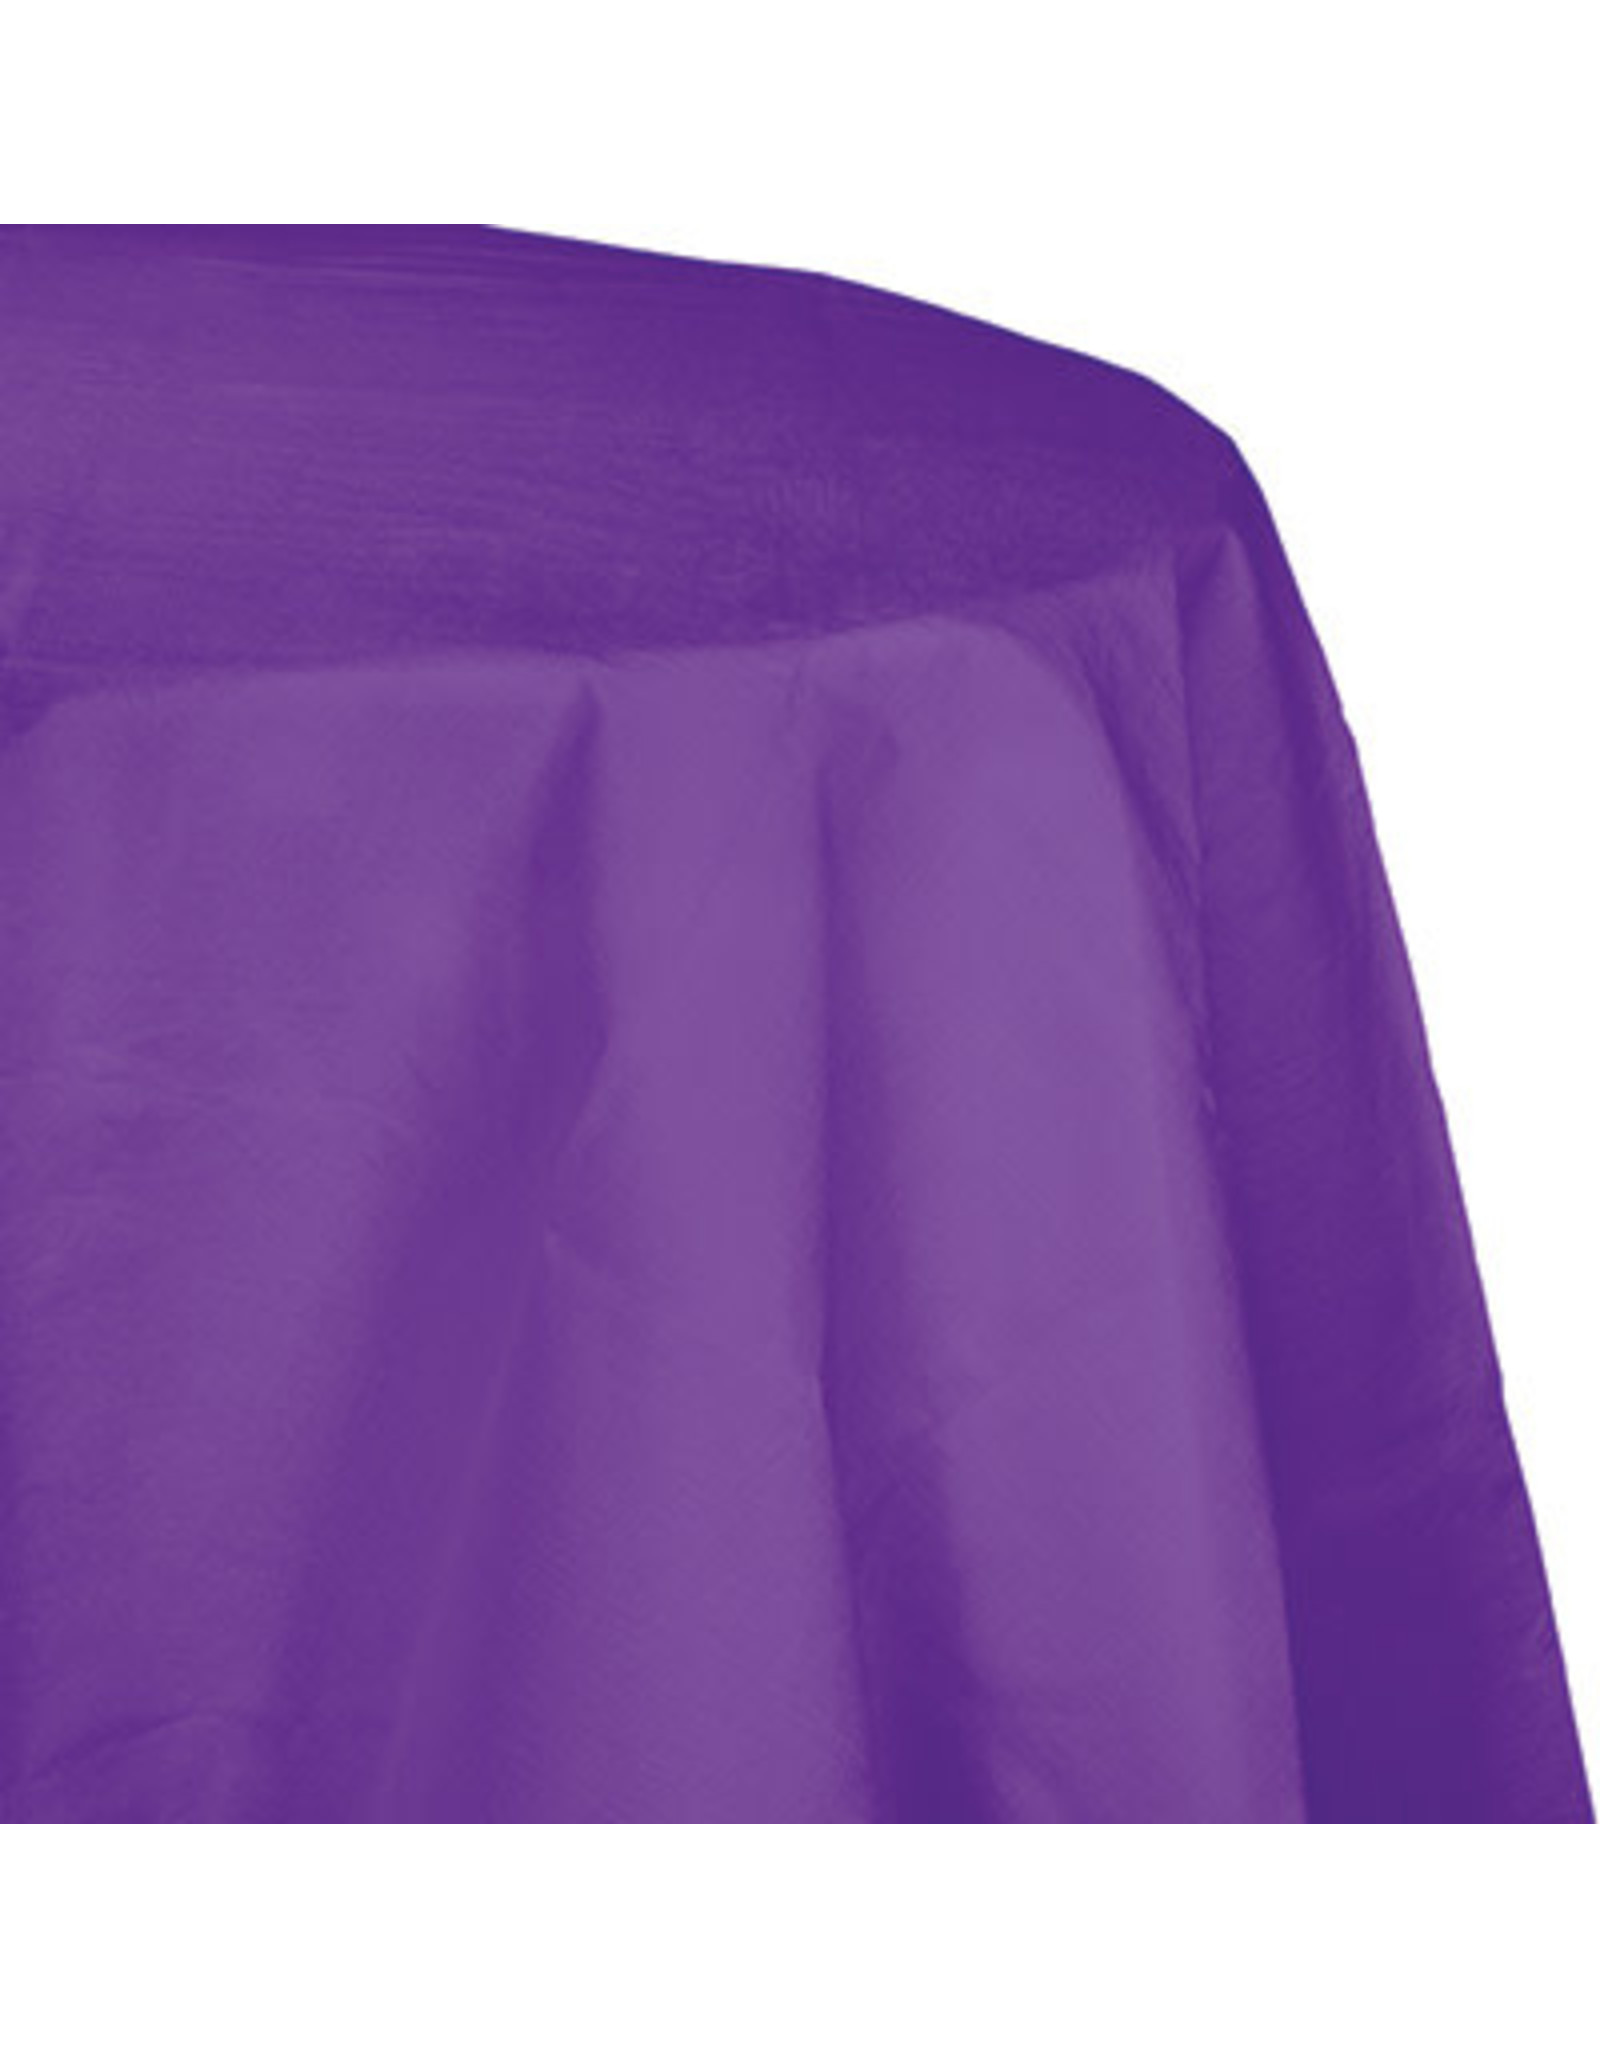 Touch of Color AMETHYST ROUND PAPER TABLECLOTH